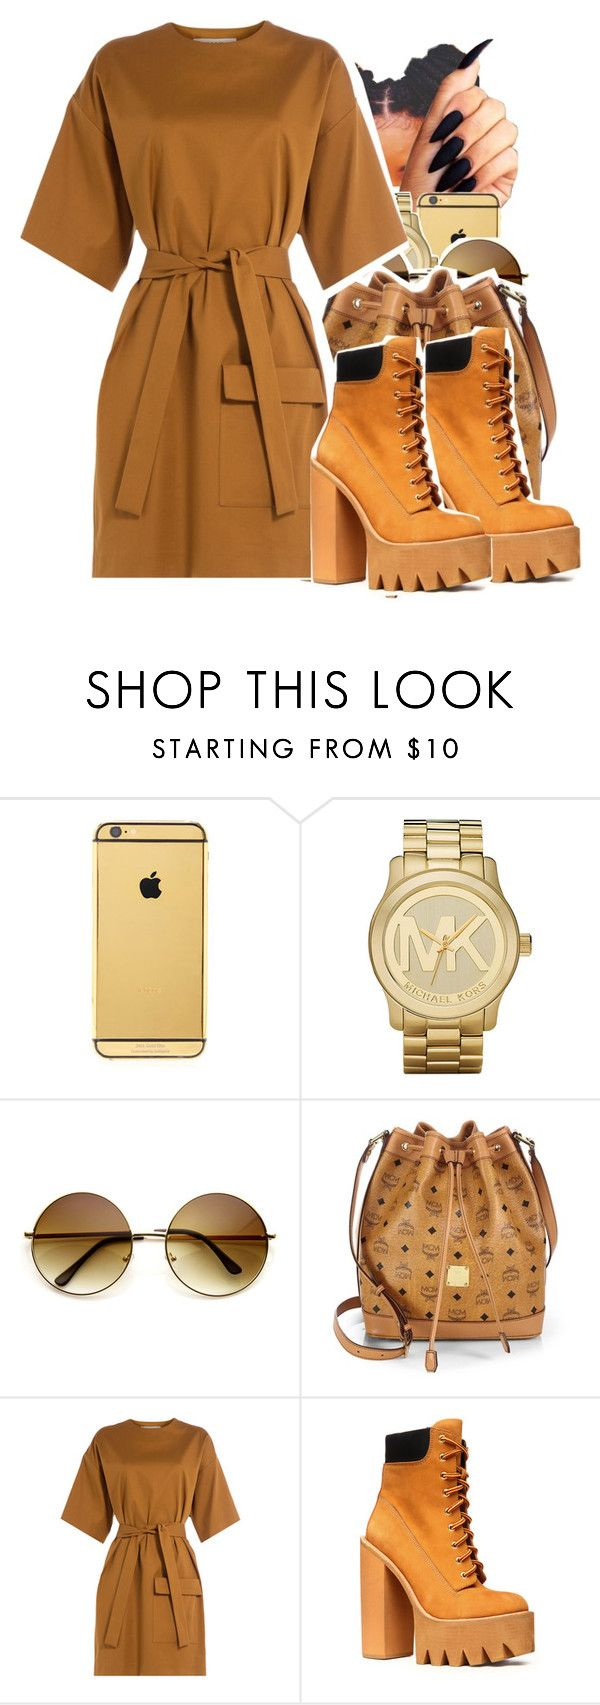 """Untitled #174"" by lesliekabengele on Polyvore featuring mode, Goldgenie, Michael Kors, MCM, MSGM et Jeffrey Campbell"